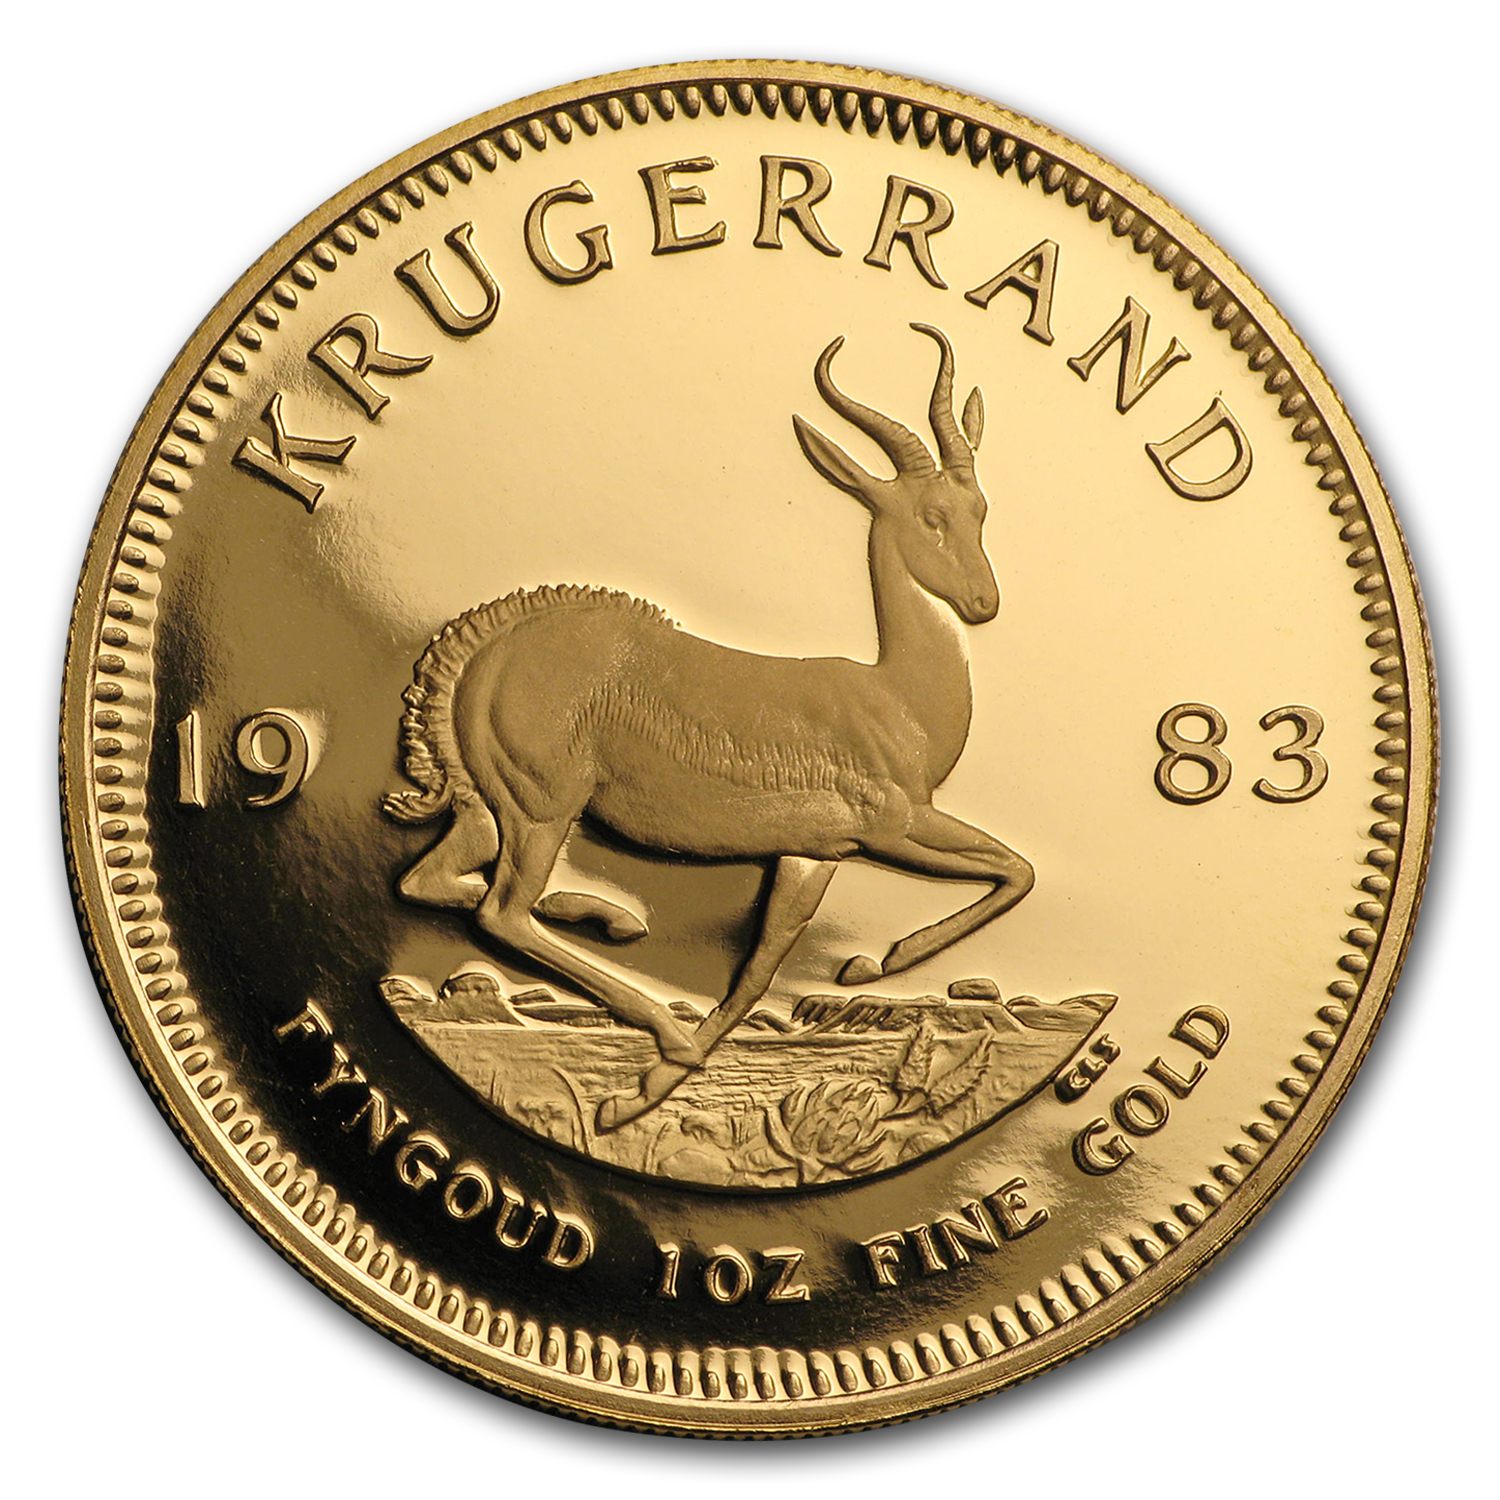 1983 1 oz Gold South African Krugerrand (Proof)